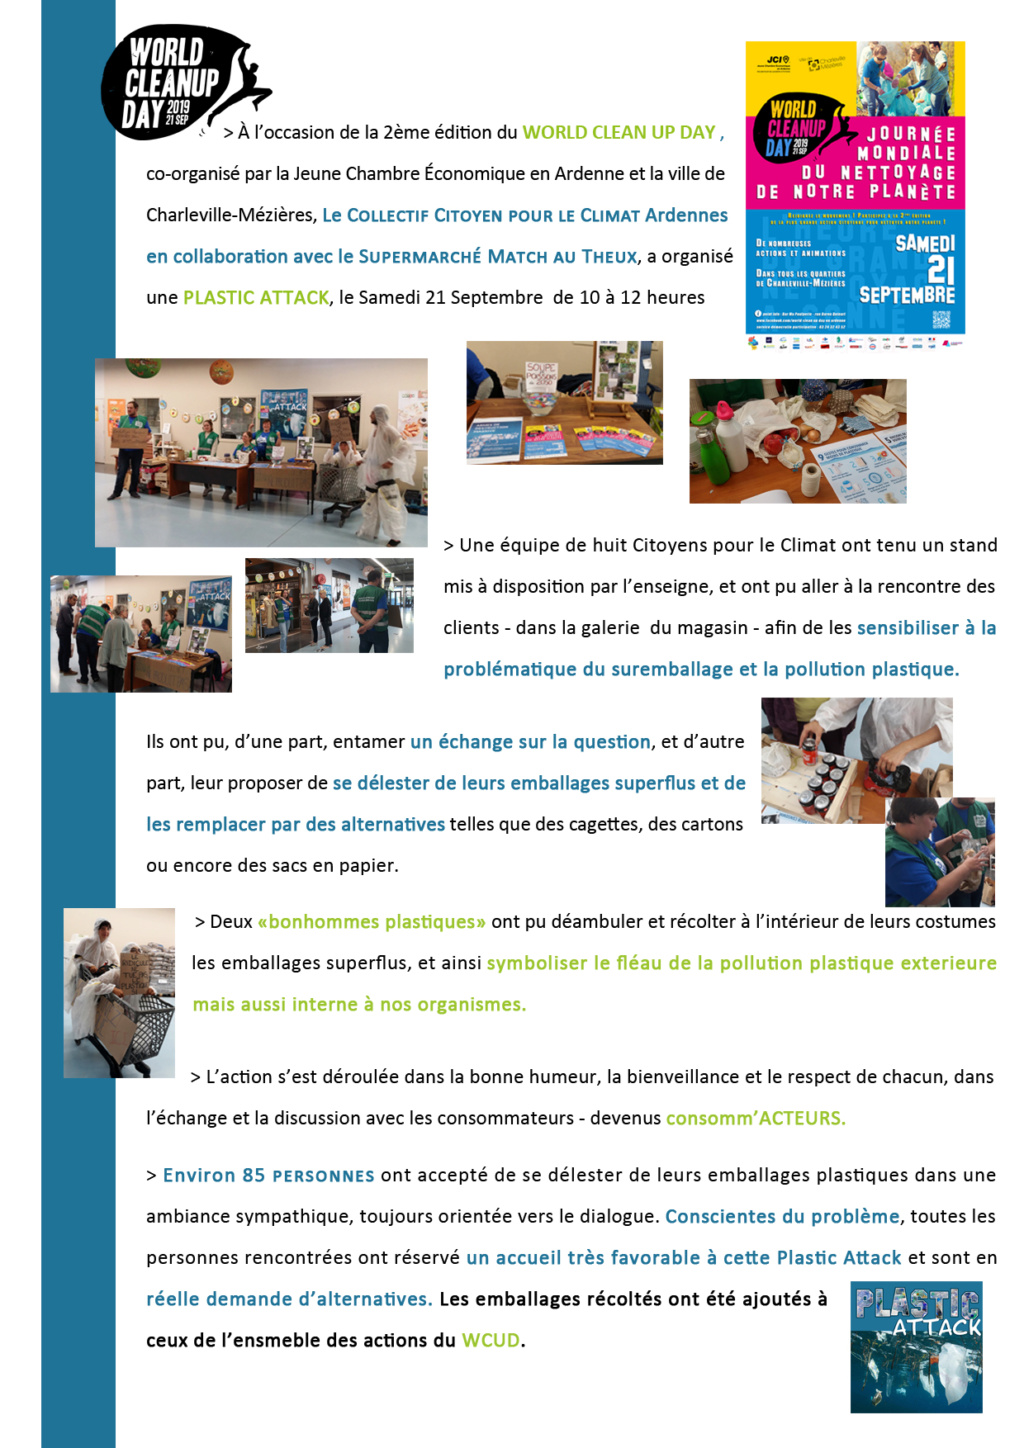 21/09/19 des plastics attacks en co-organisation avec le World Clean Up Day Ardennes  - Page 2 Bilan_11